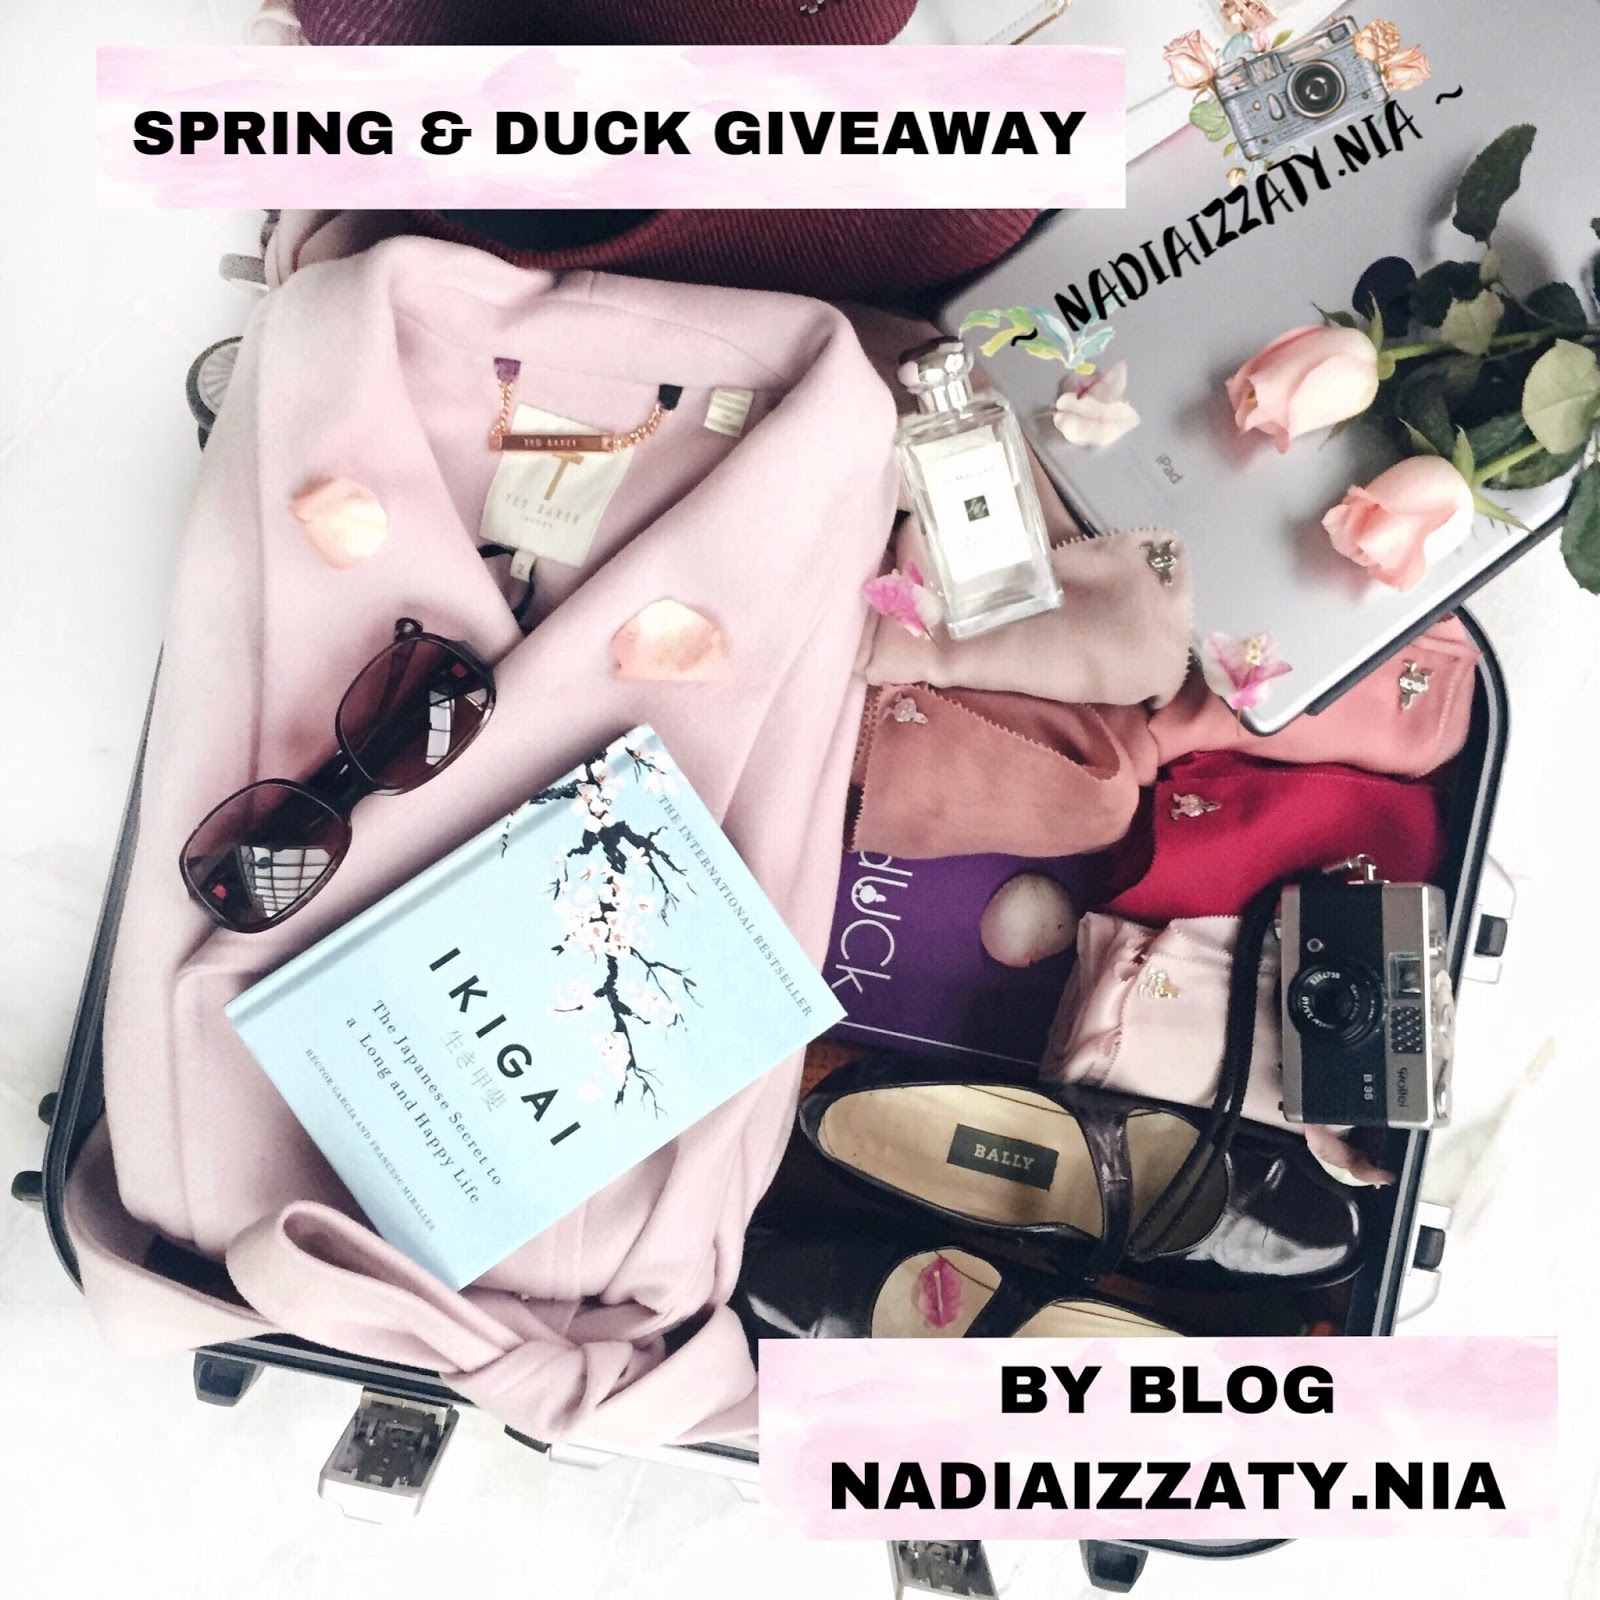 SPRING & DUCK GIVEAWAY BY BLOG NADIAIZZATY.NIA